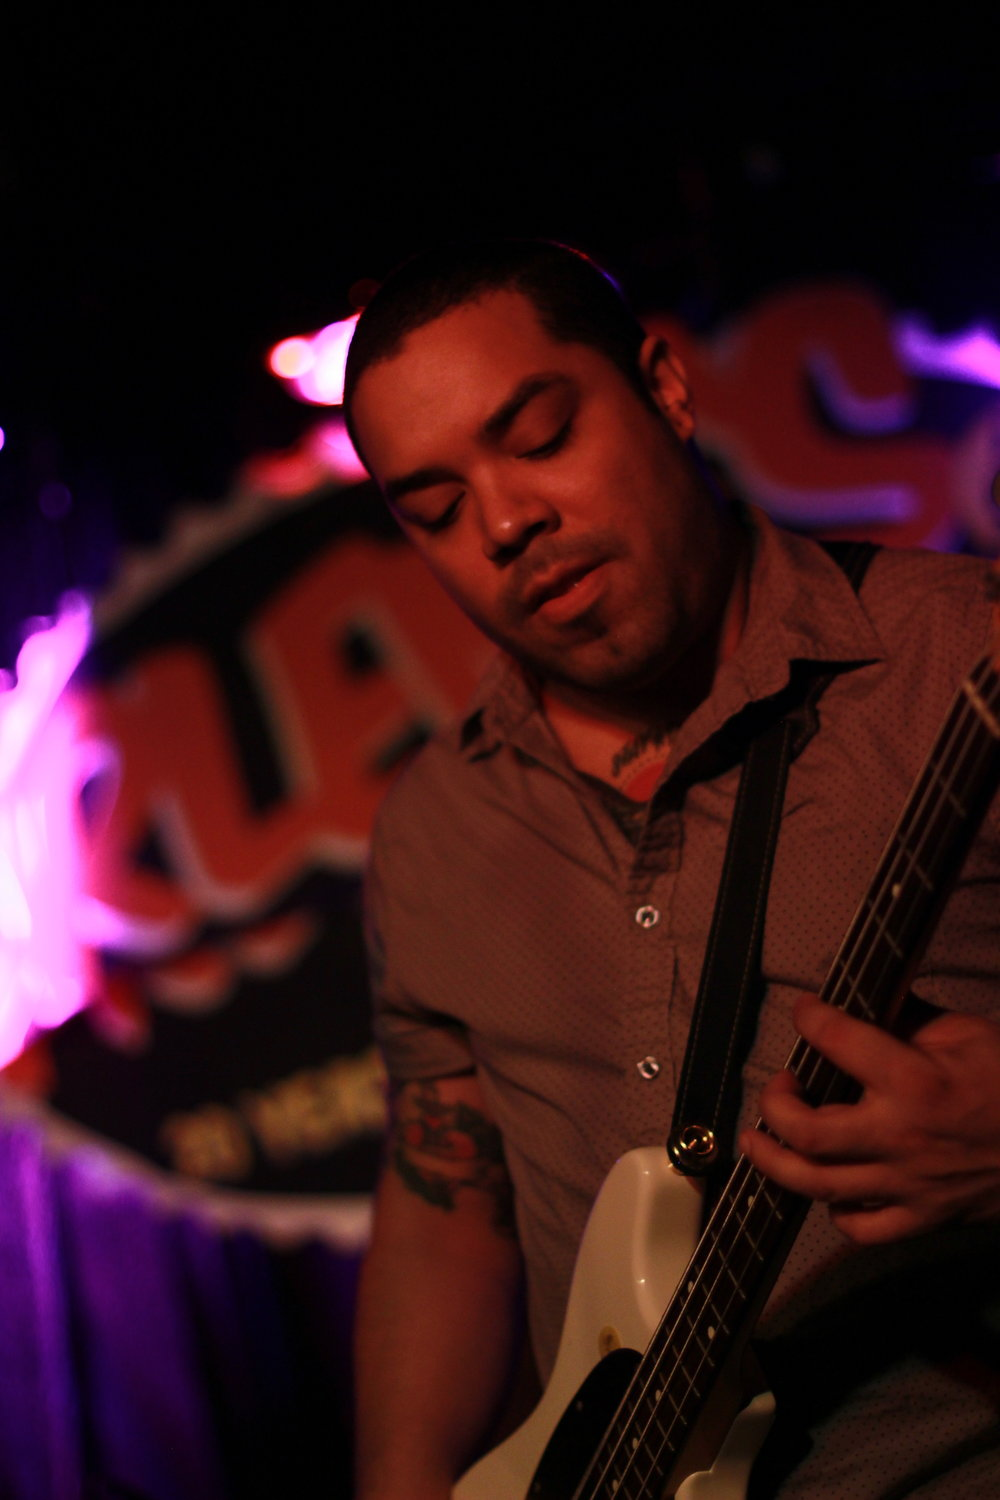 Jordache on the bass at Arlene's Grocery. Photo courtesy of Kevin Vallejos.